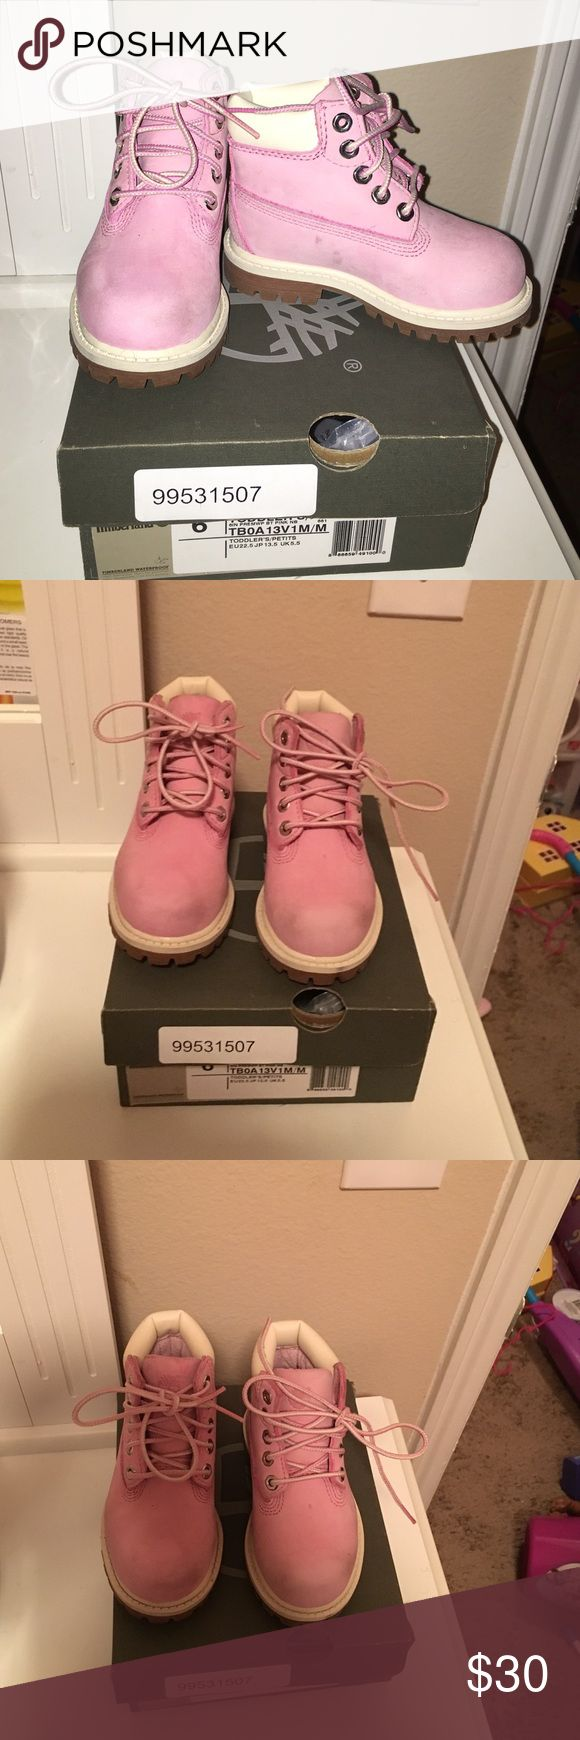 Used Pink Timberlands Fairly New Condition Light Pink TimberLand Boots For Toddler Girls Shoes Boots